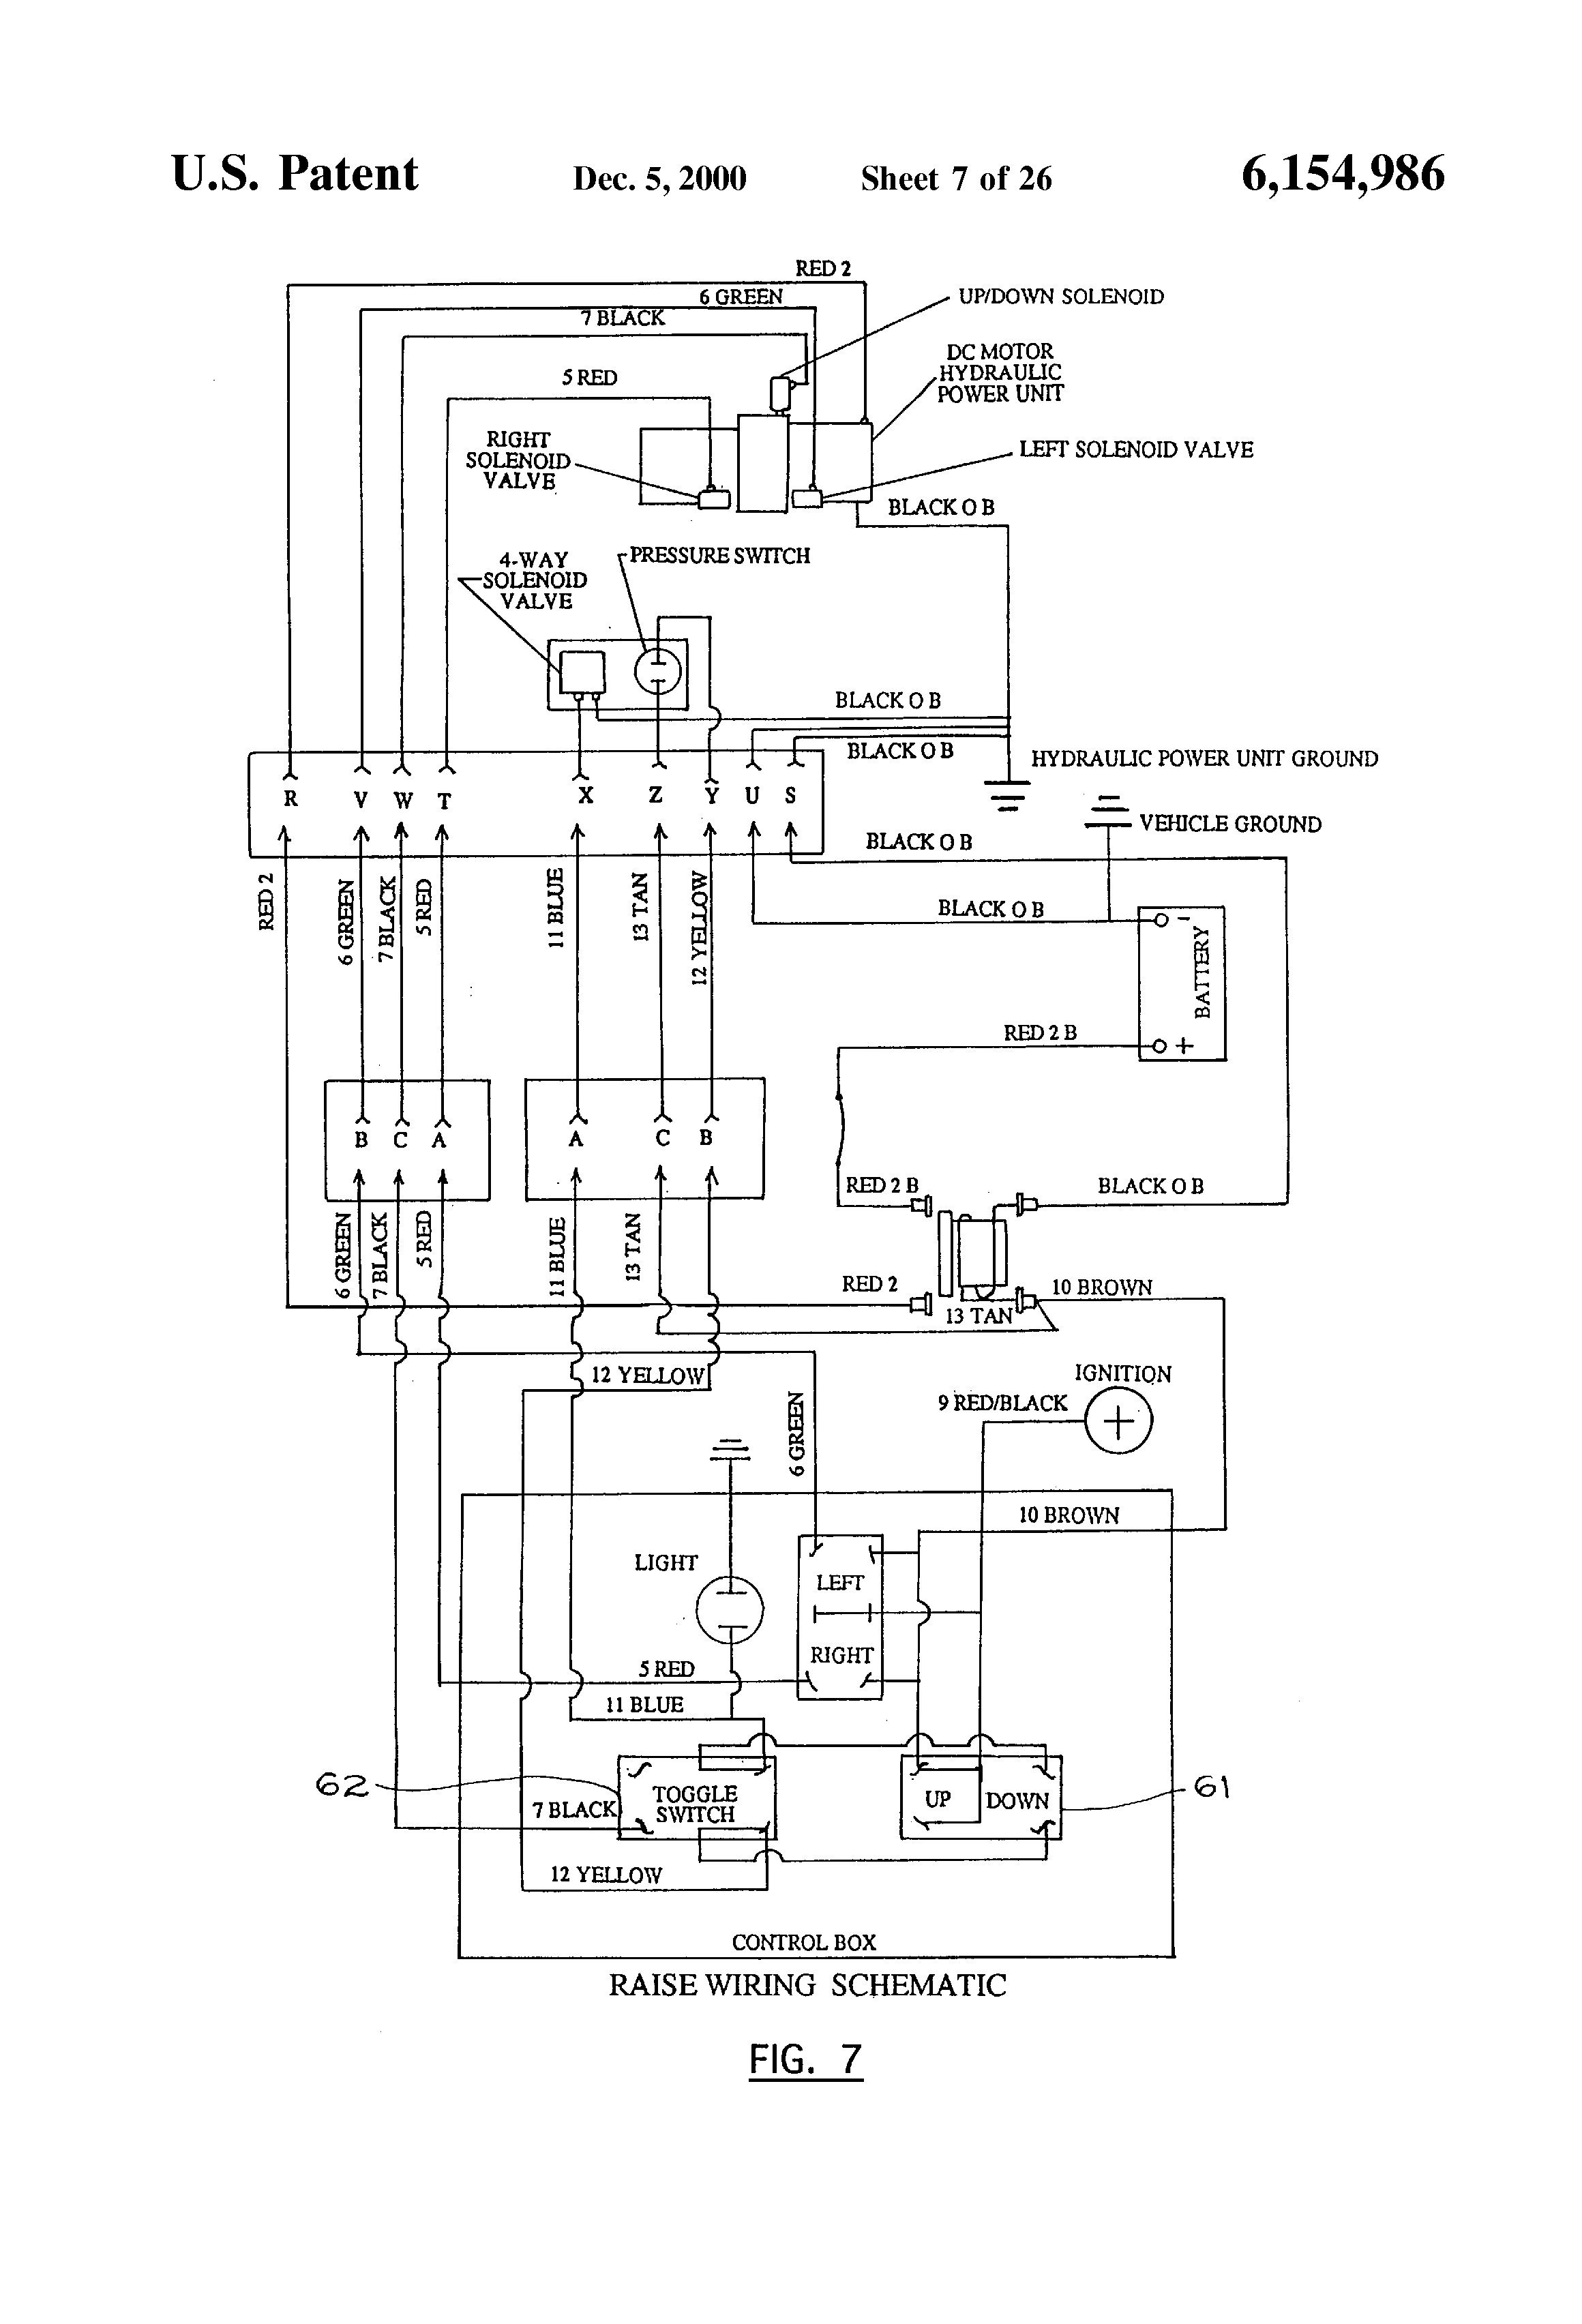 63323 Snowdogg Wiring Diagram | Digital Resources on western plow control diagram, western plow wiring diagram ford, western snow plow diagram, home studio diagram, western plow hydraulic diagram, western suburbanite plow wiring diagram, western plow pump diagram, western unimount plow wiring, chevy western plow wiring diagram, western plow parts diagram, western plow joystick wiring-diagram, western ultramount troubleshooting, western wideout plow diagram, western plow solenoid wiring, western mvp plow wiring diagram, meyer plow pump parts diagram,